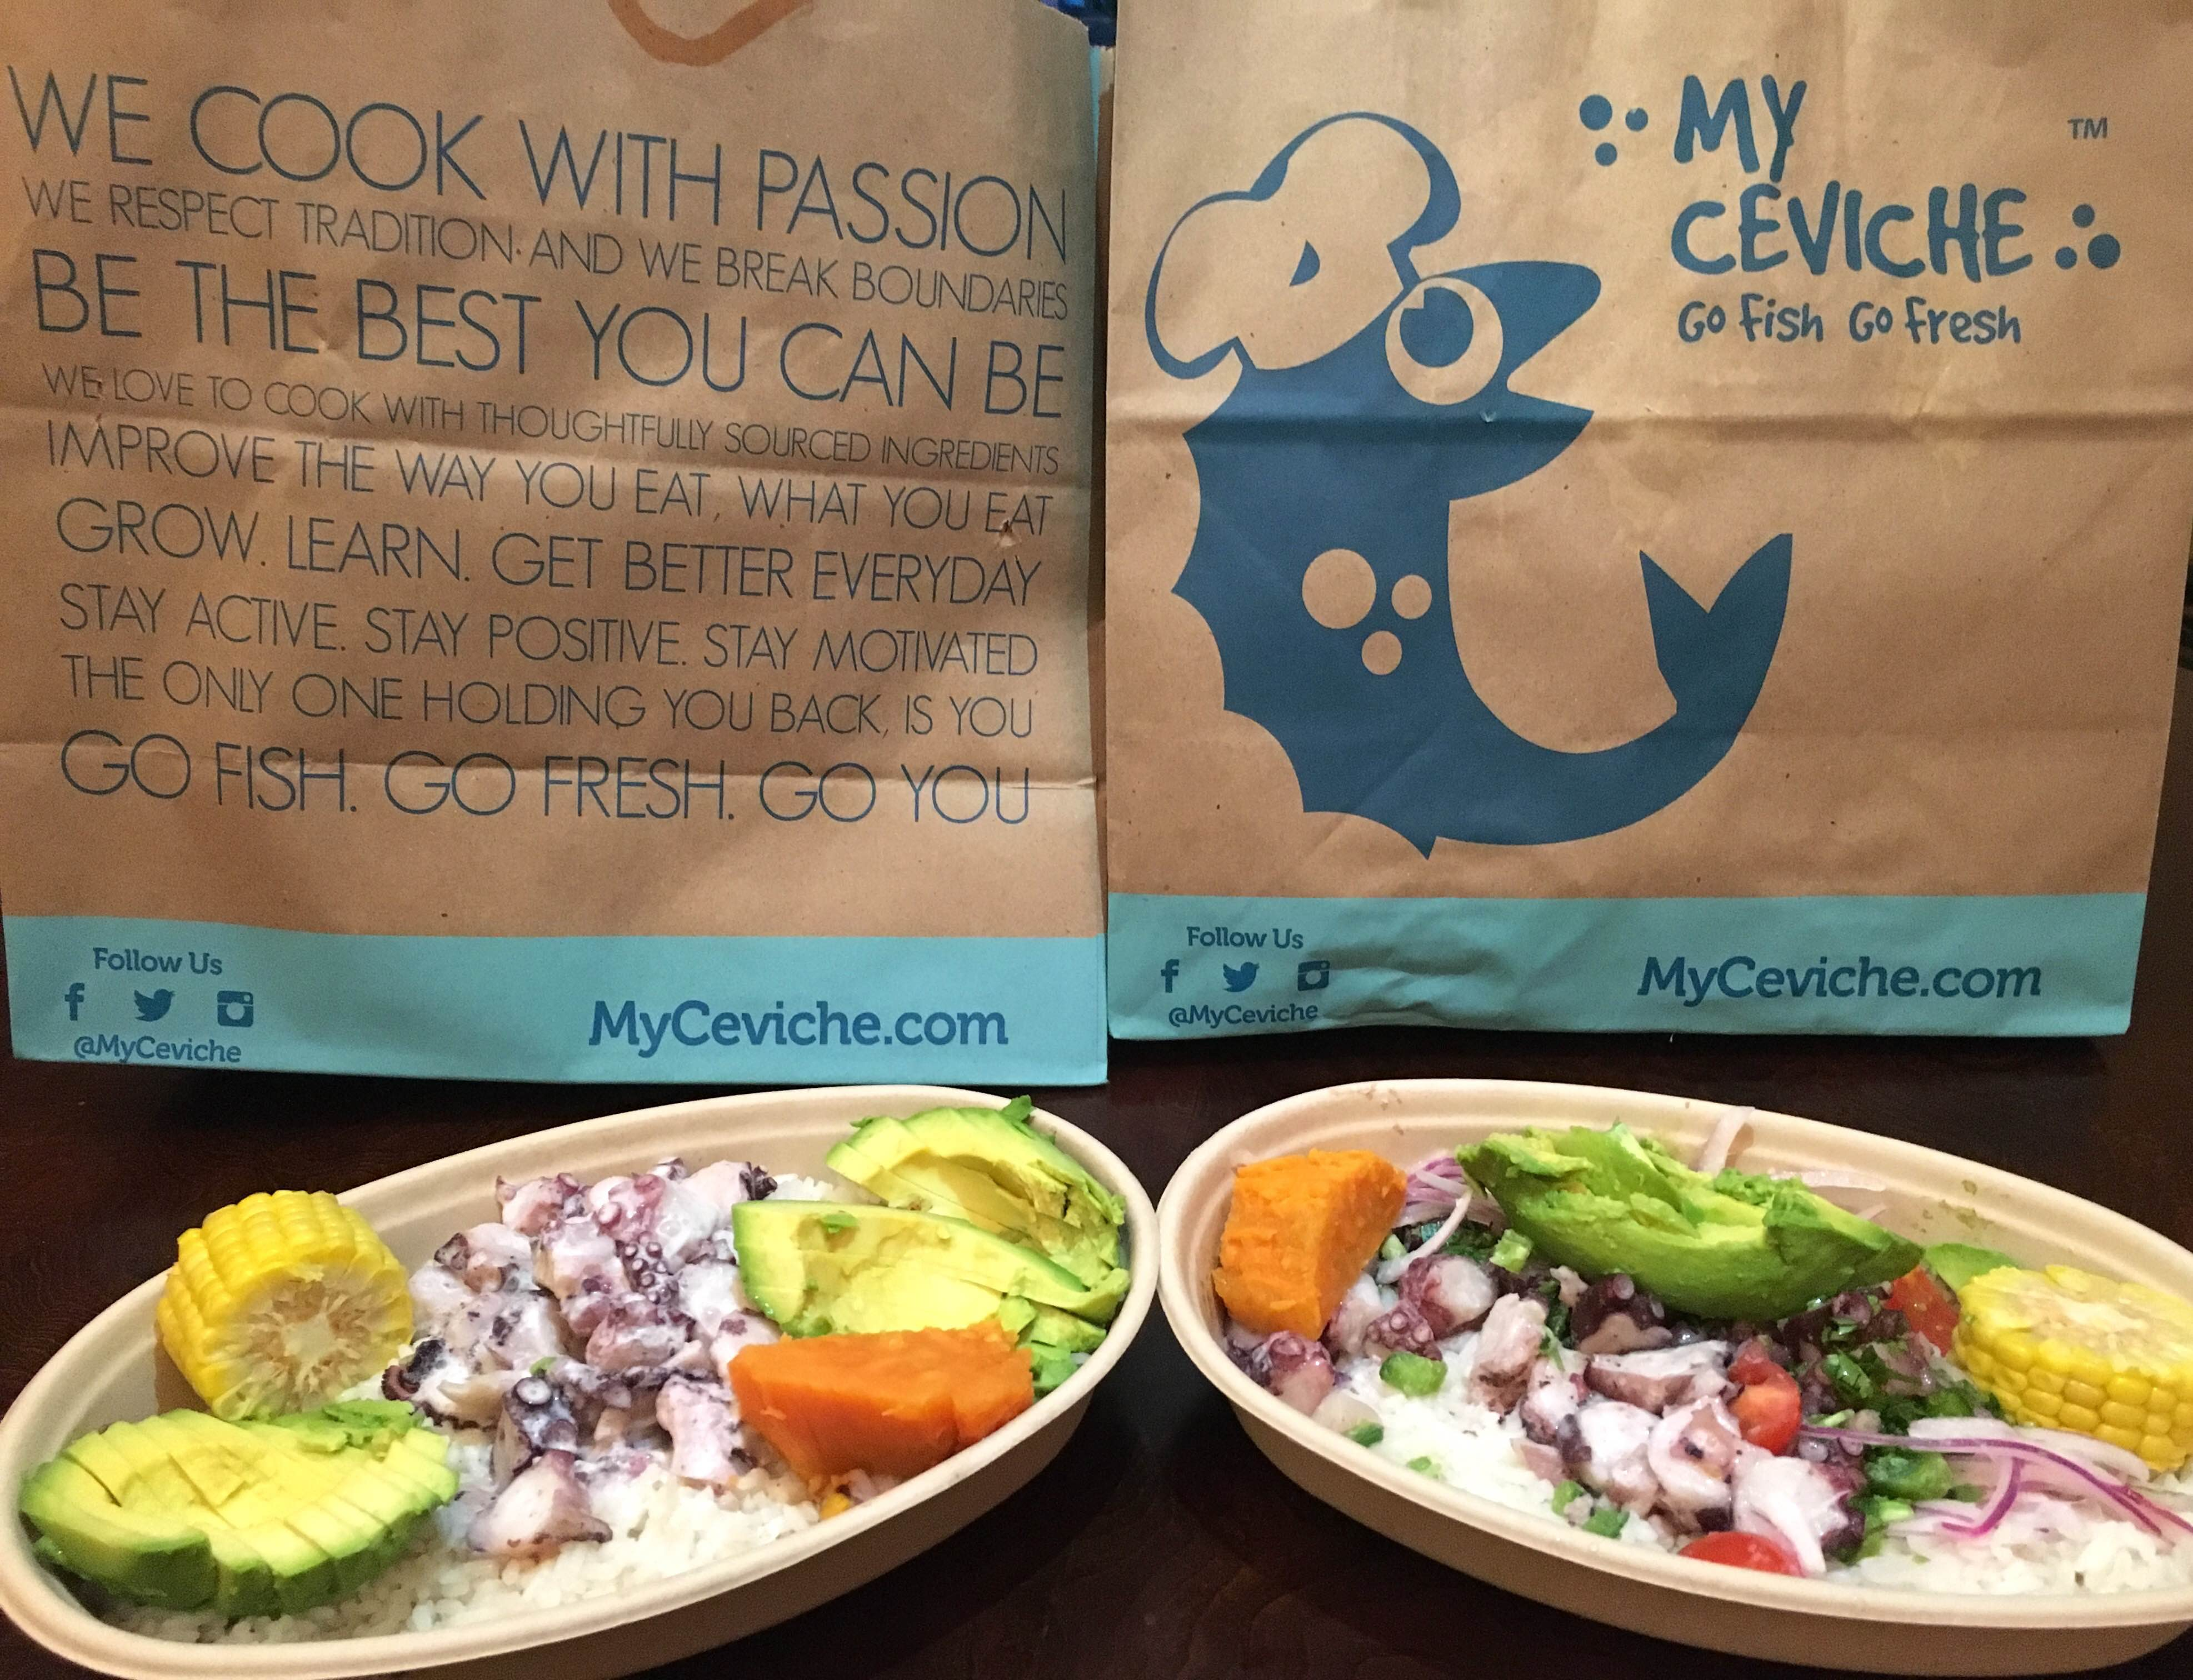 UberEATS (left) and Postmates (right) delivery of My Ceviche